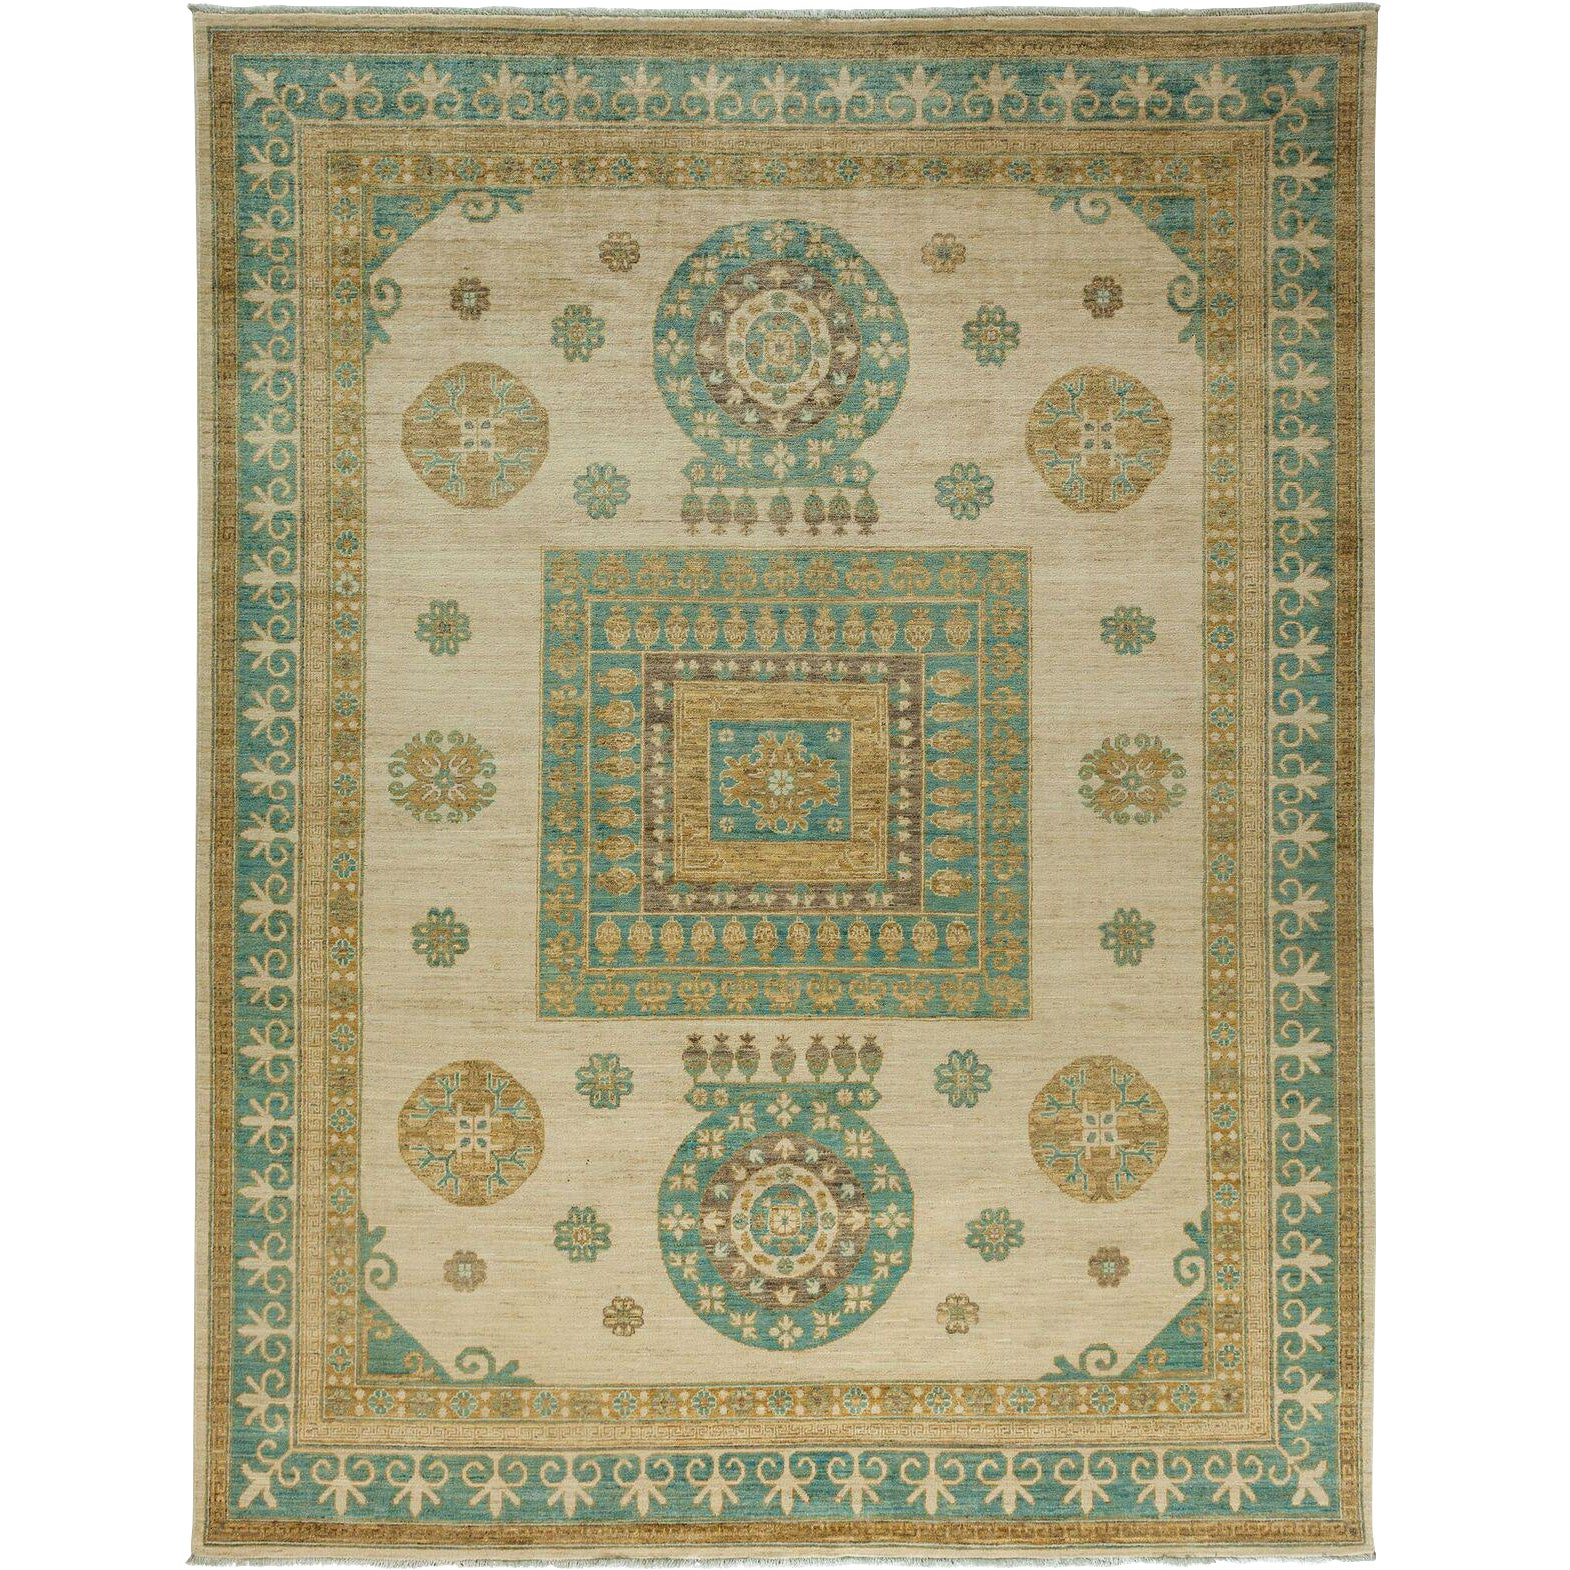 Khotan Hand Knotted Area Rug 8 10 X 11 6 Chairish